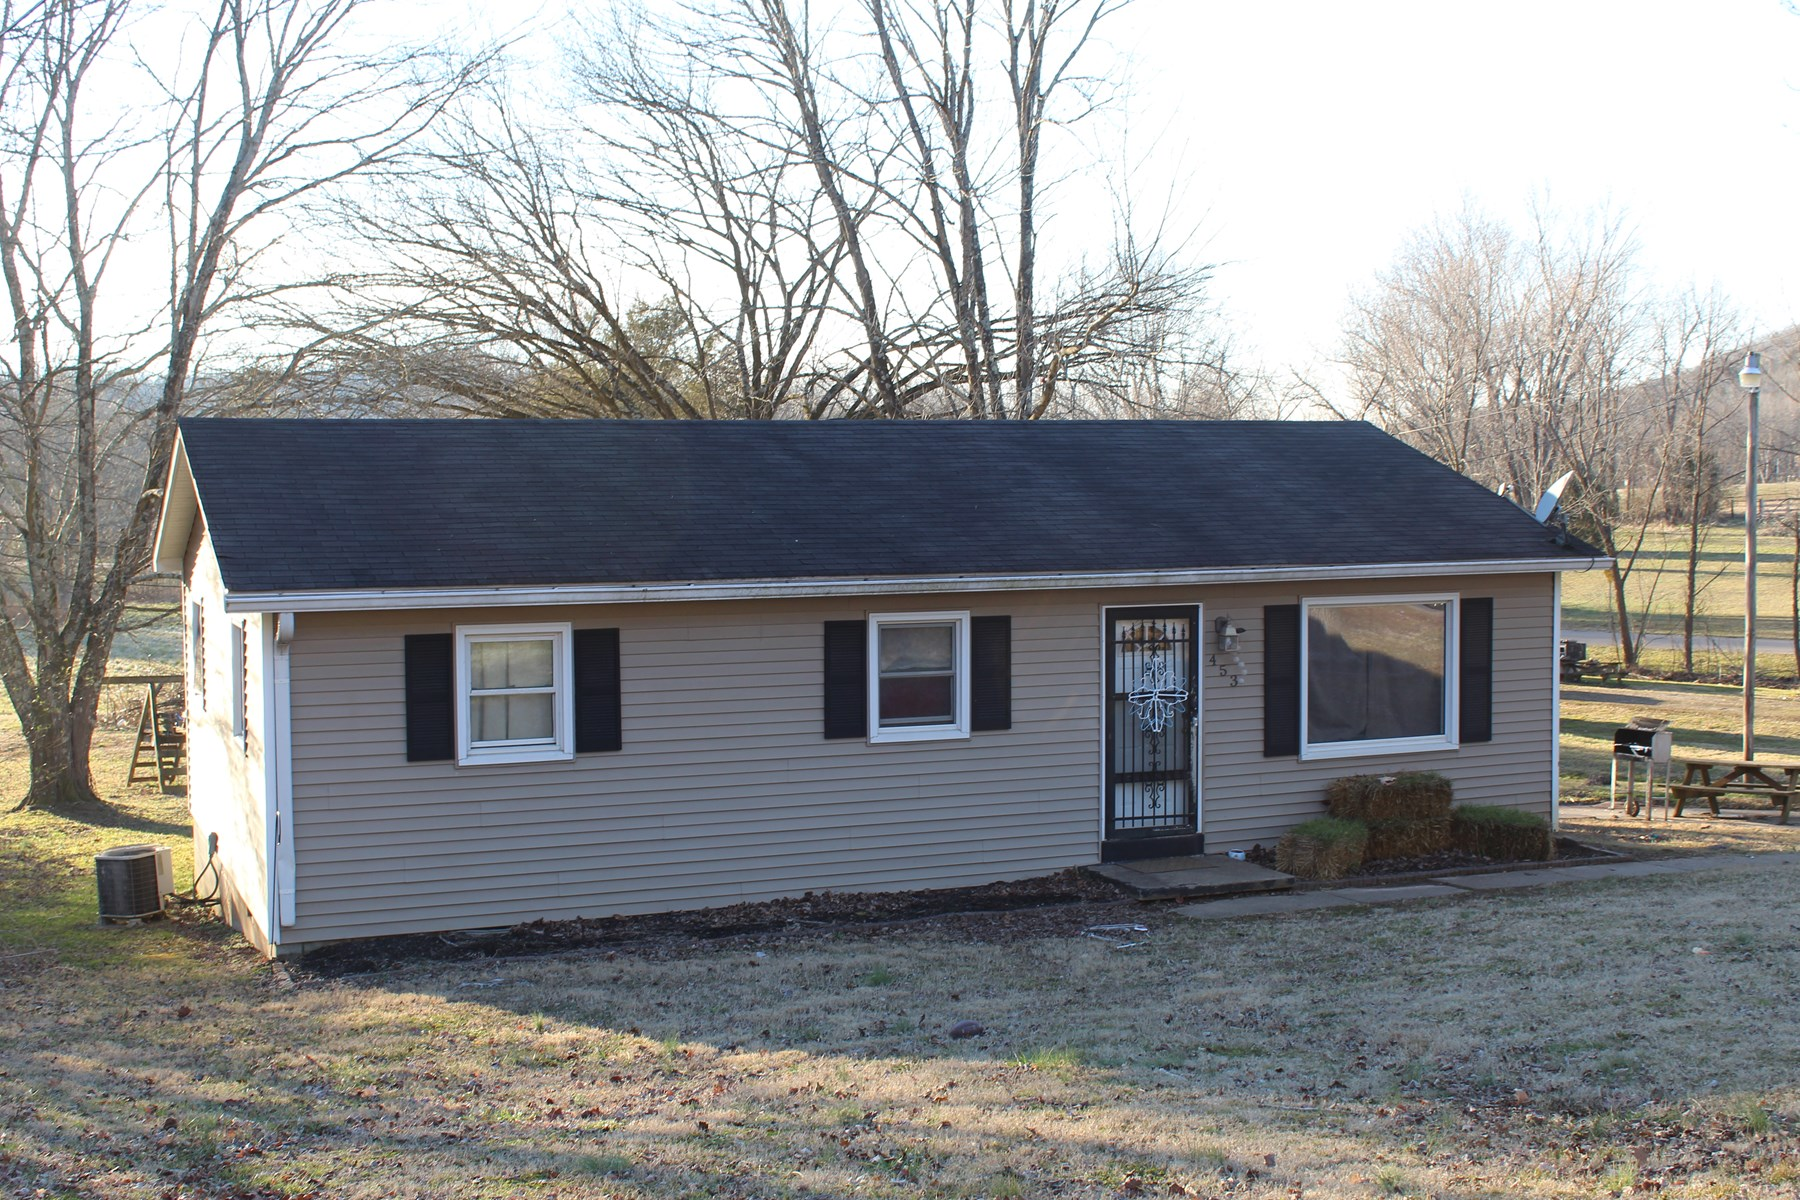 3 Bedroom 1 Bath country home for sale near Bowling Green Ky